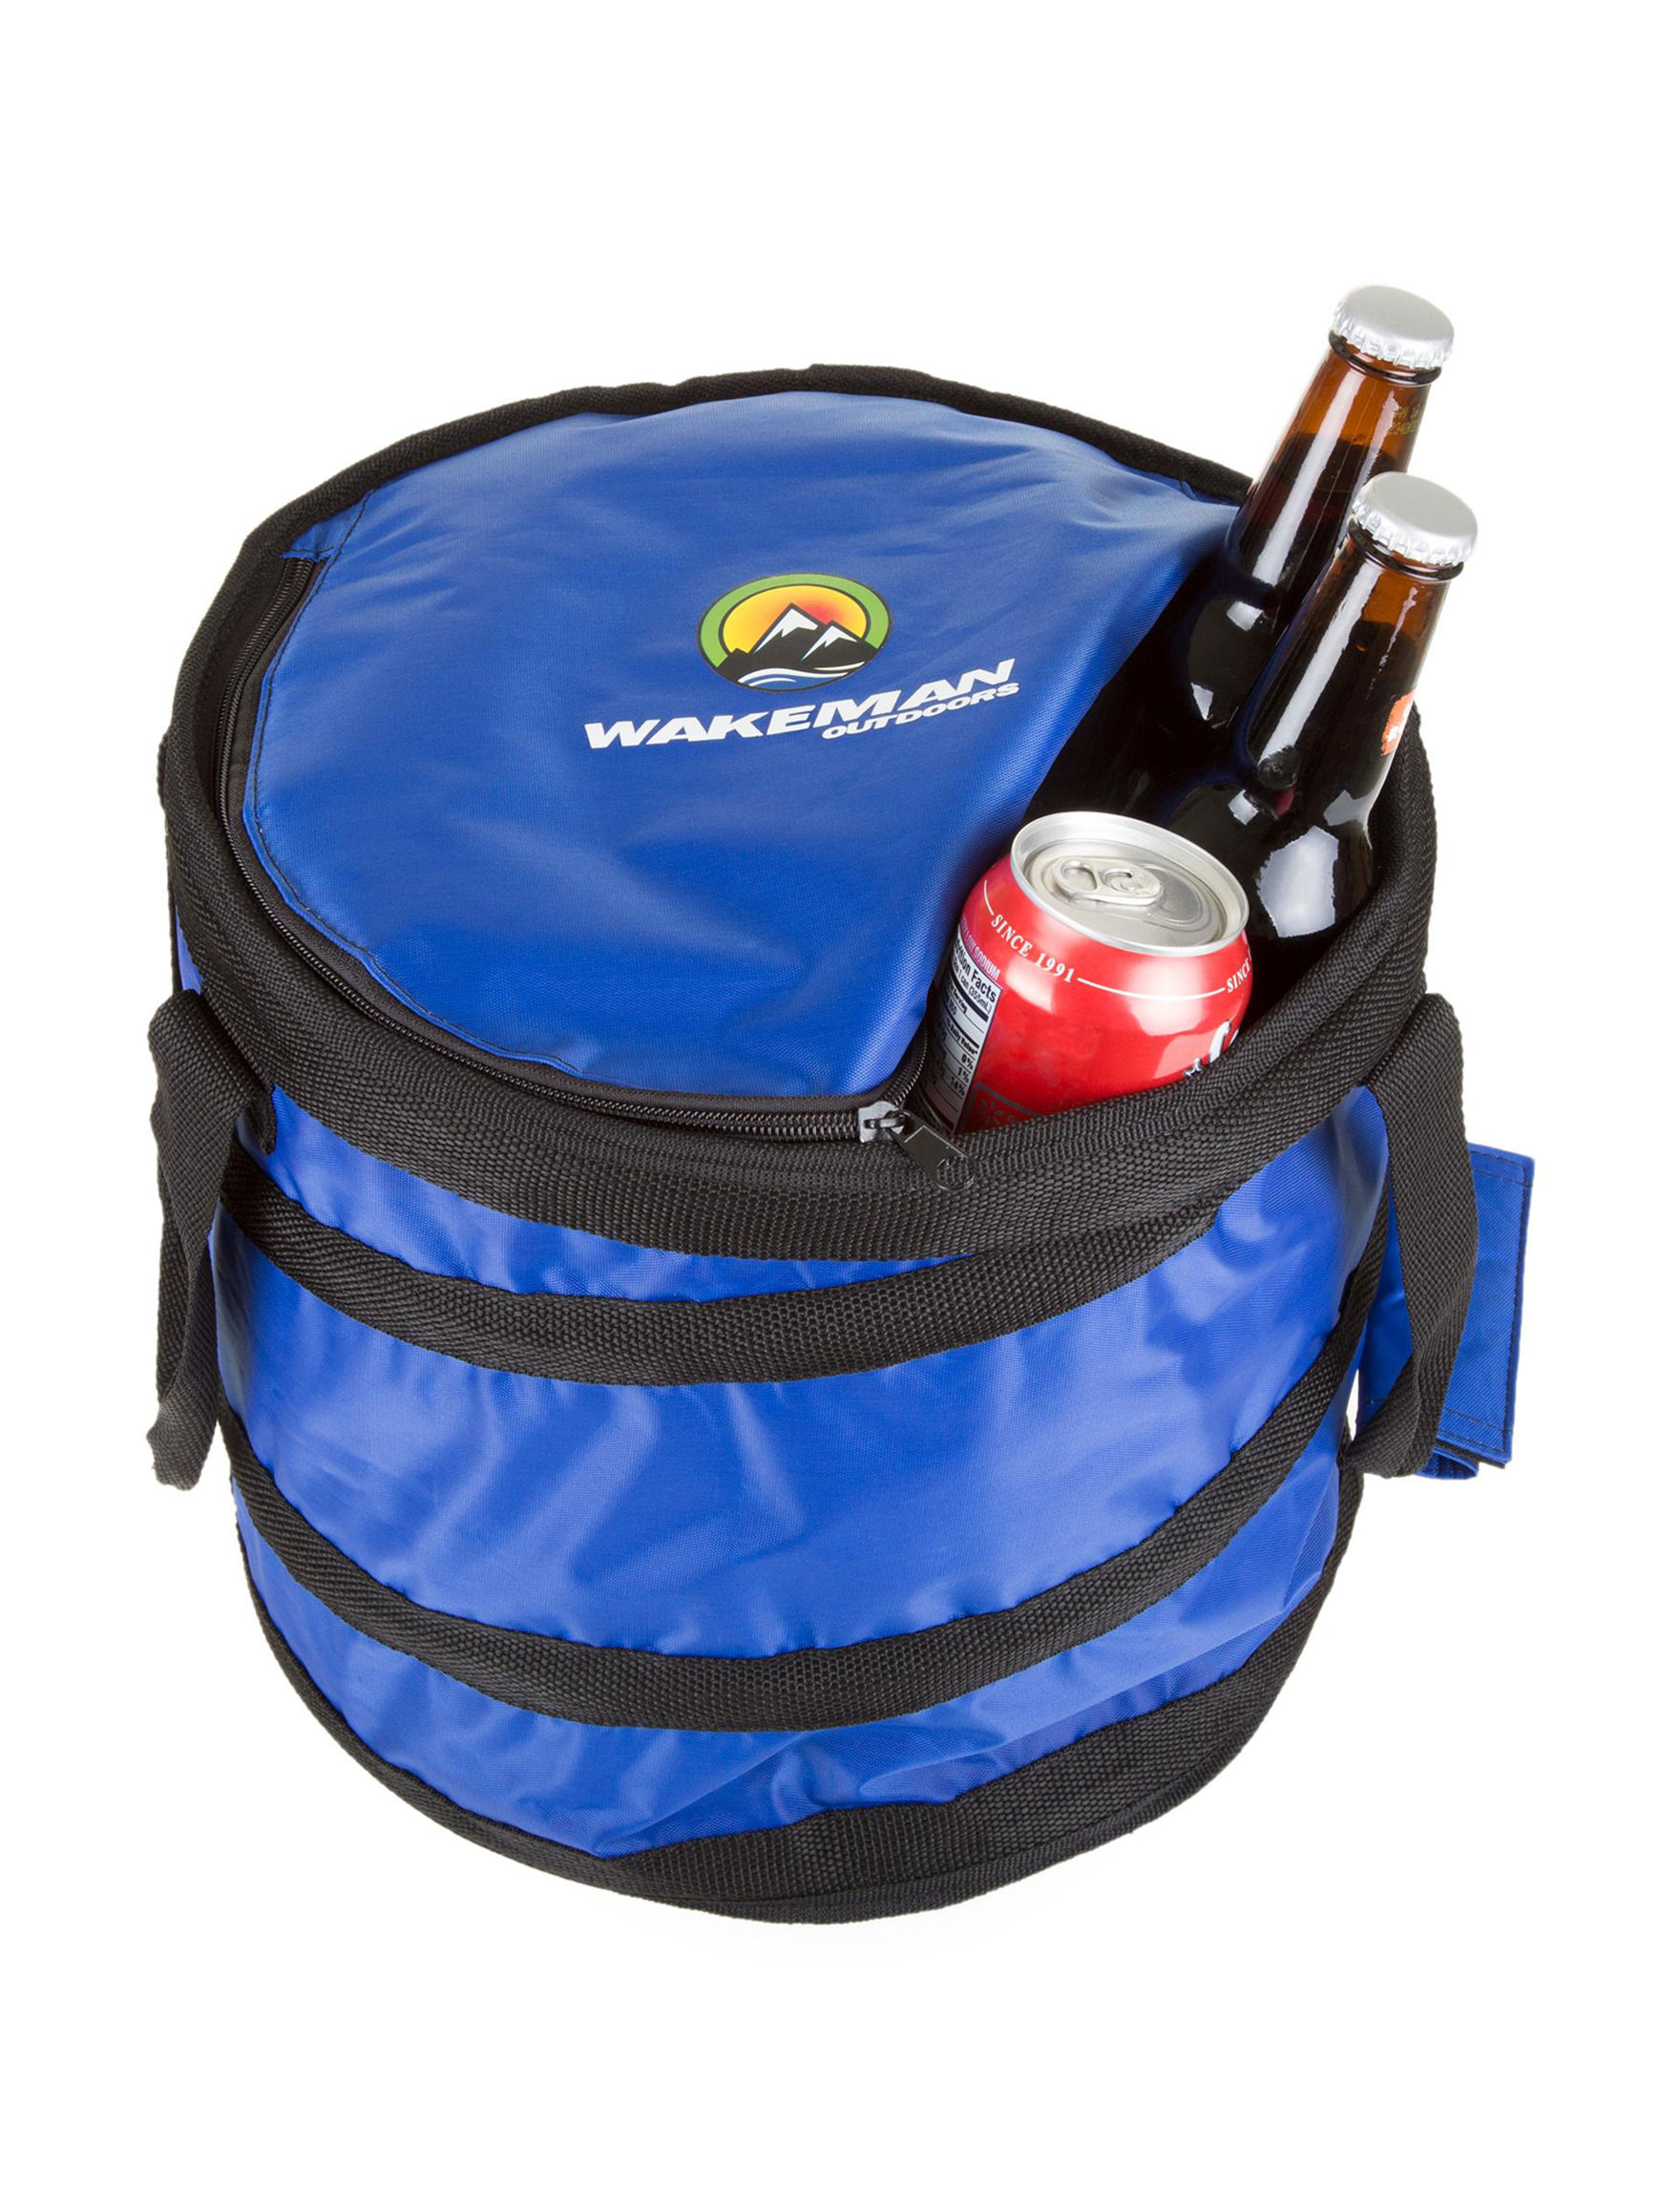 Wakeman Blue Coolers Camping & Outdoor Gear